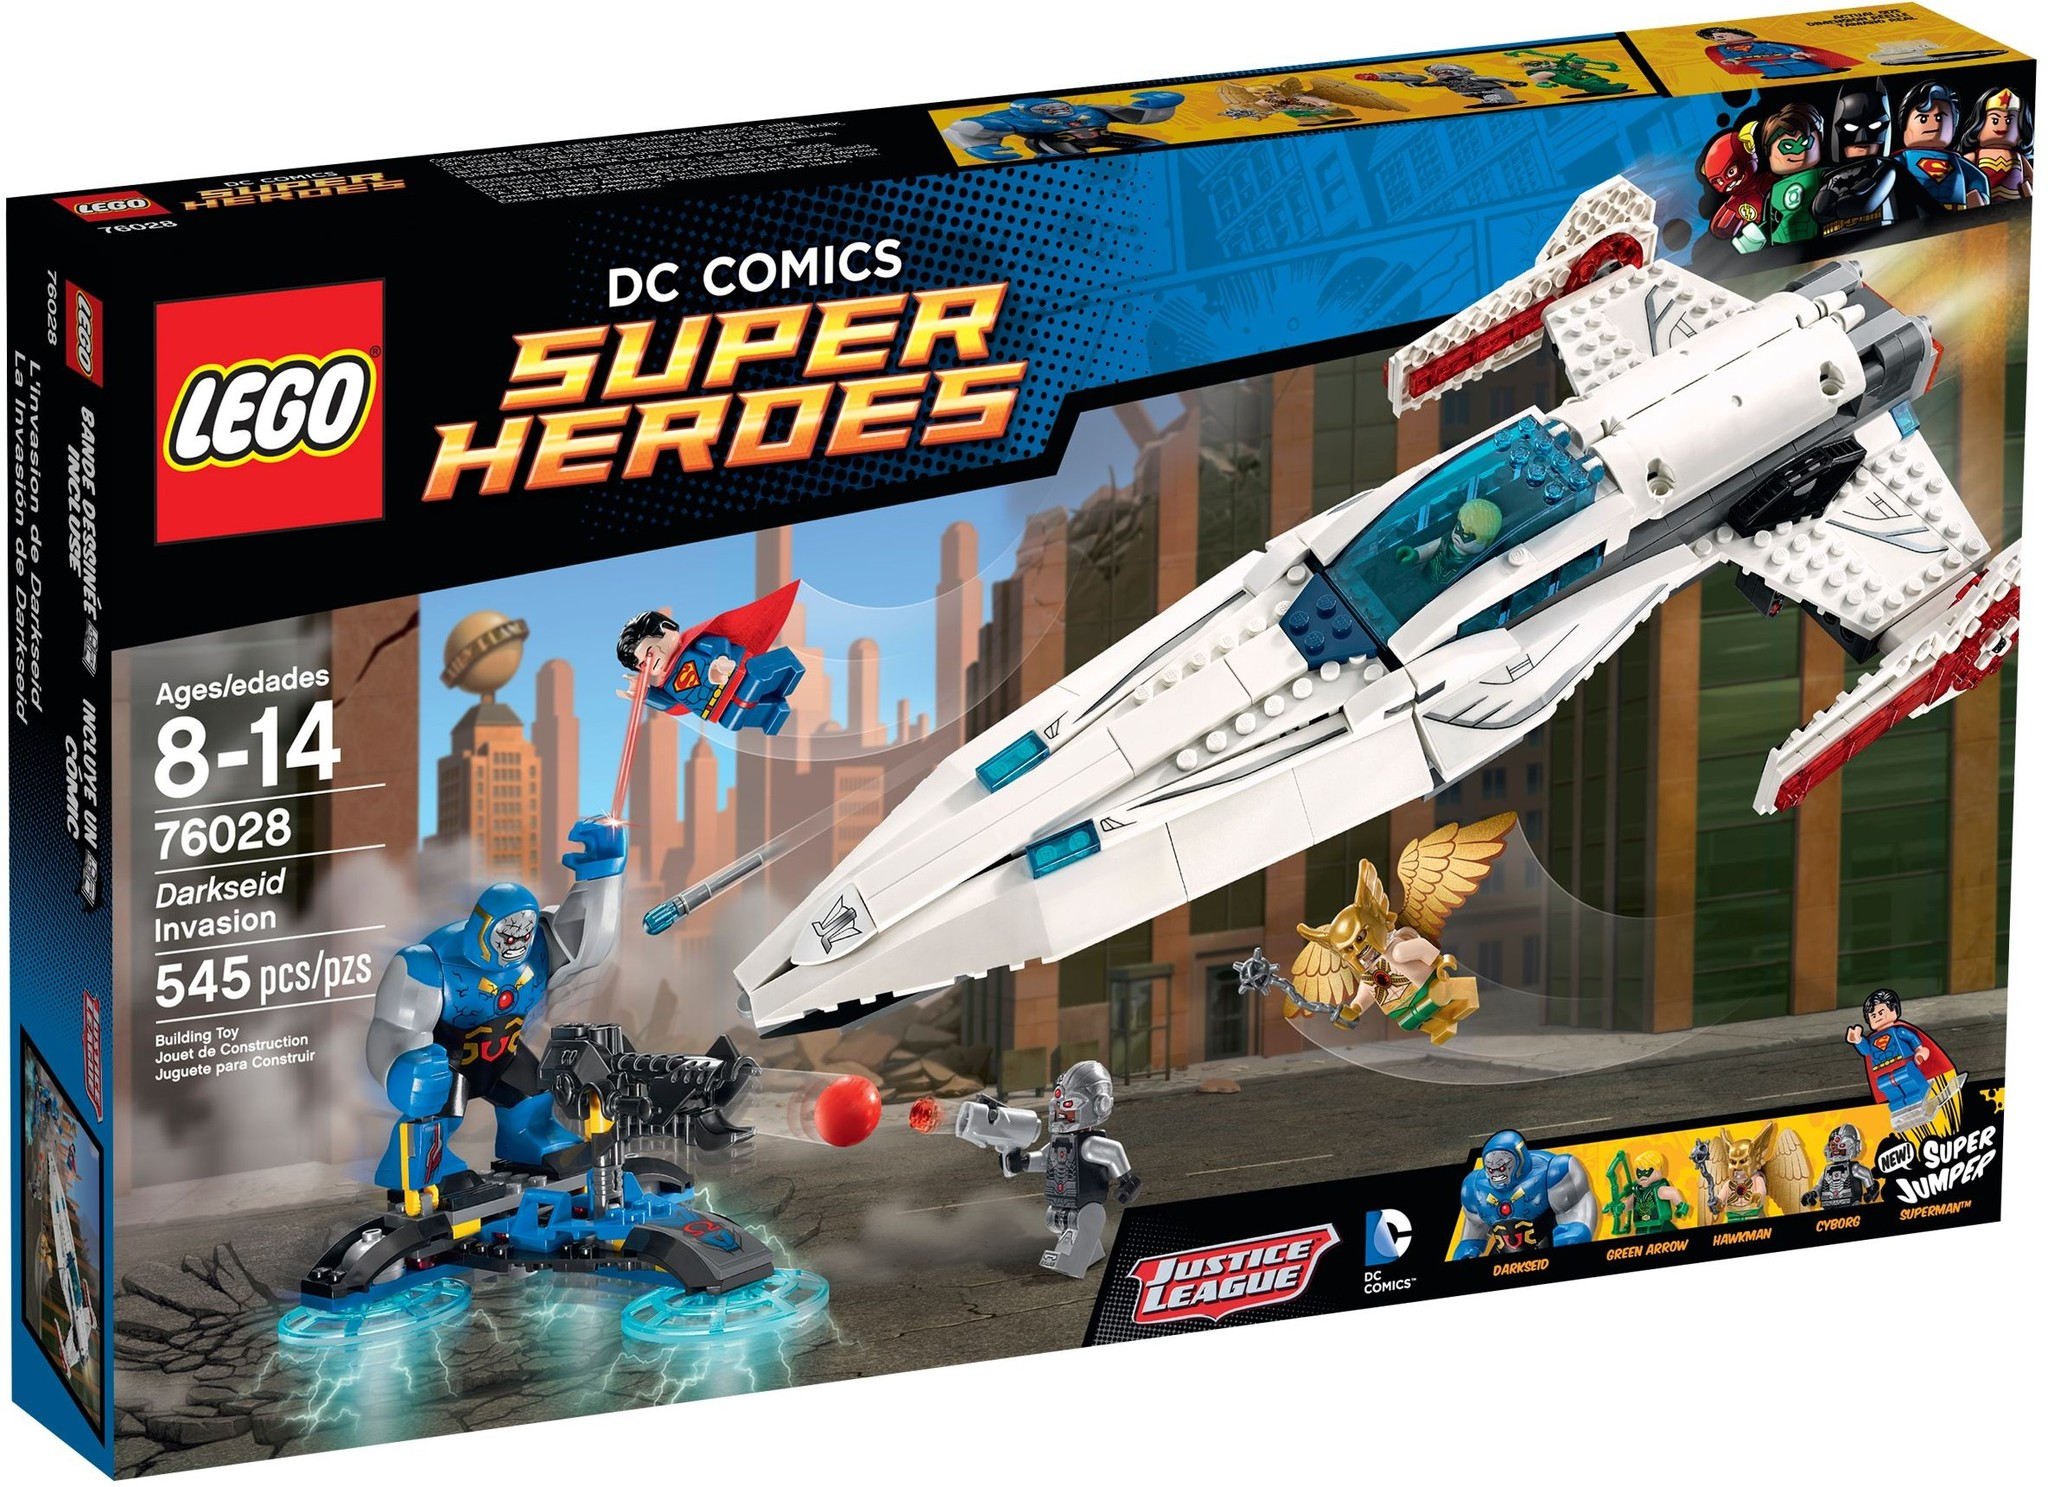 LEGO 76028 - Super Heroes - Darkseid Invasion